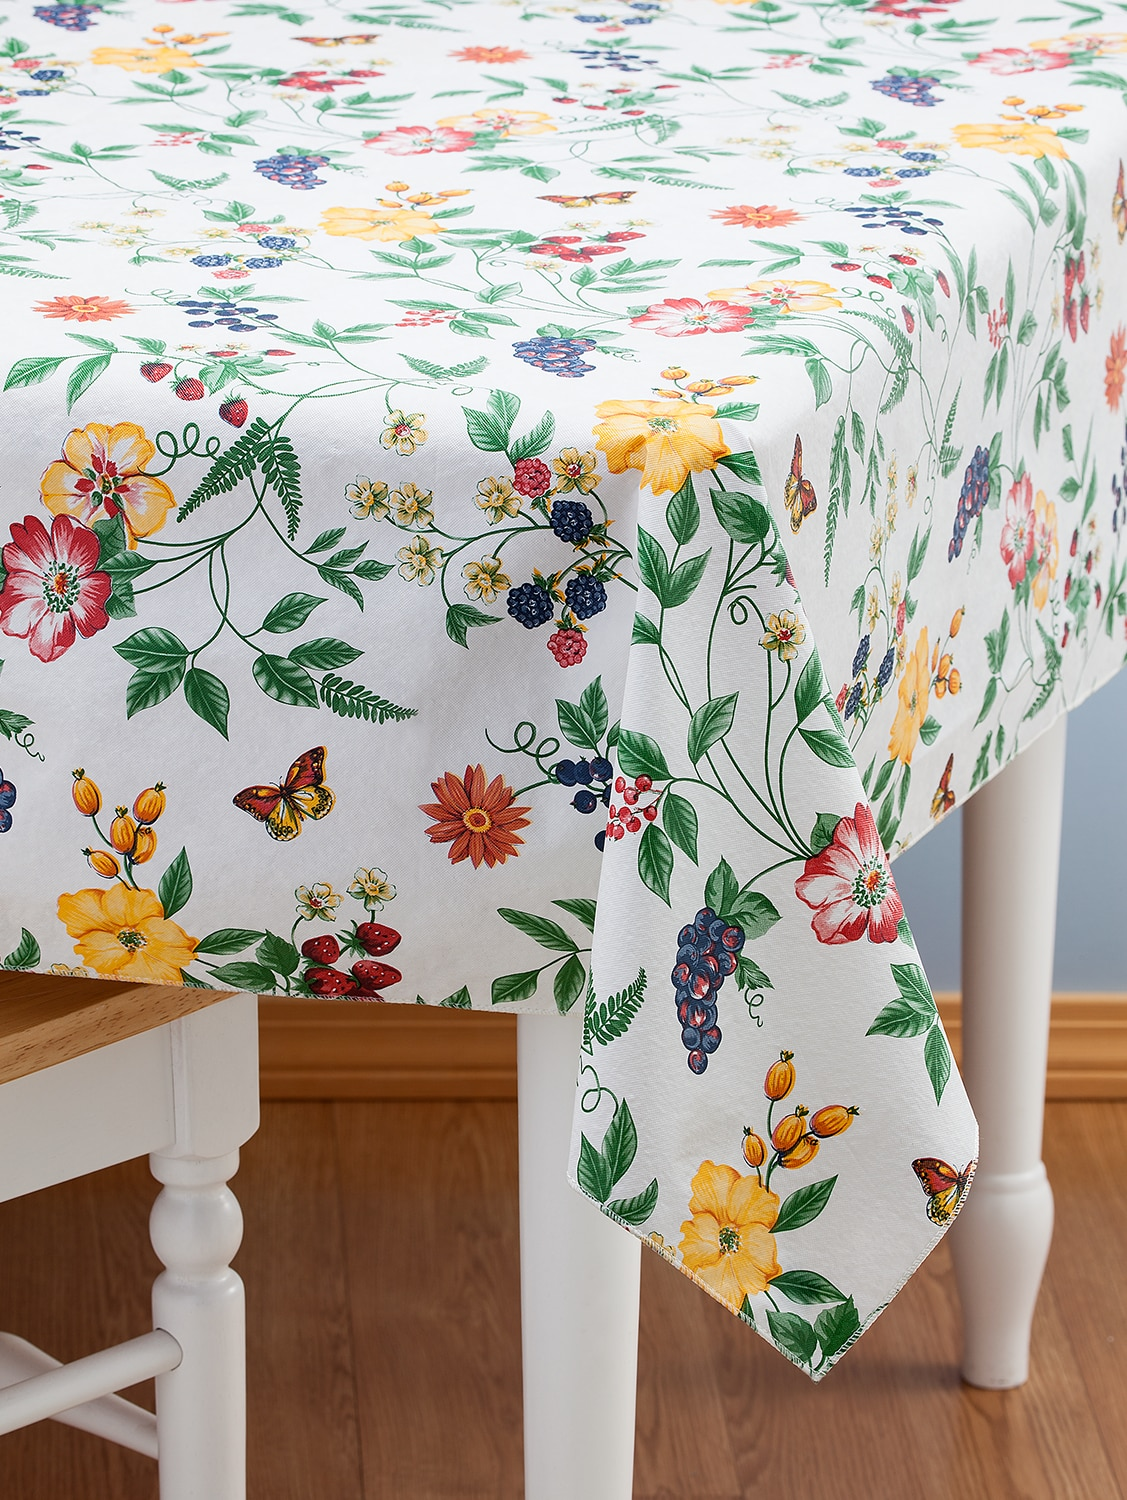 Ivory Round Vinyl Fitted Tablecloth with Flannel Backing in 2 Sizes